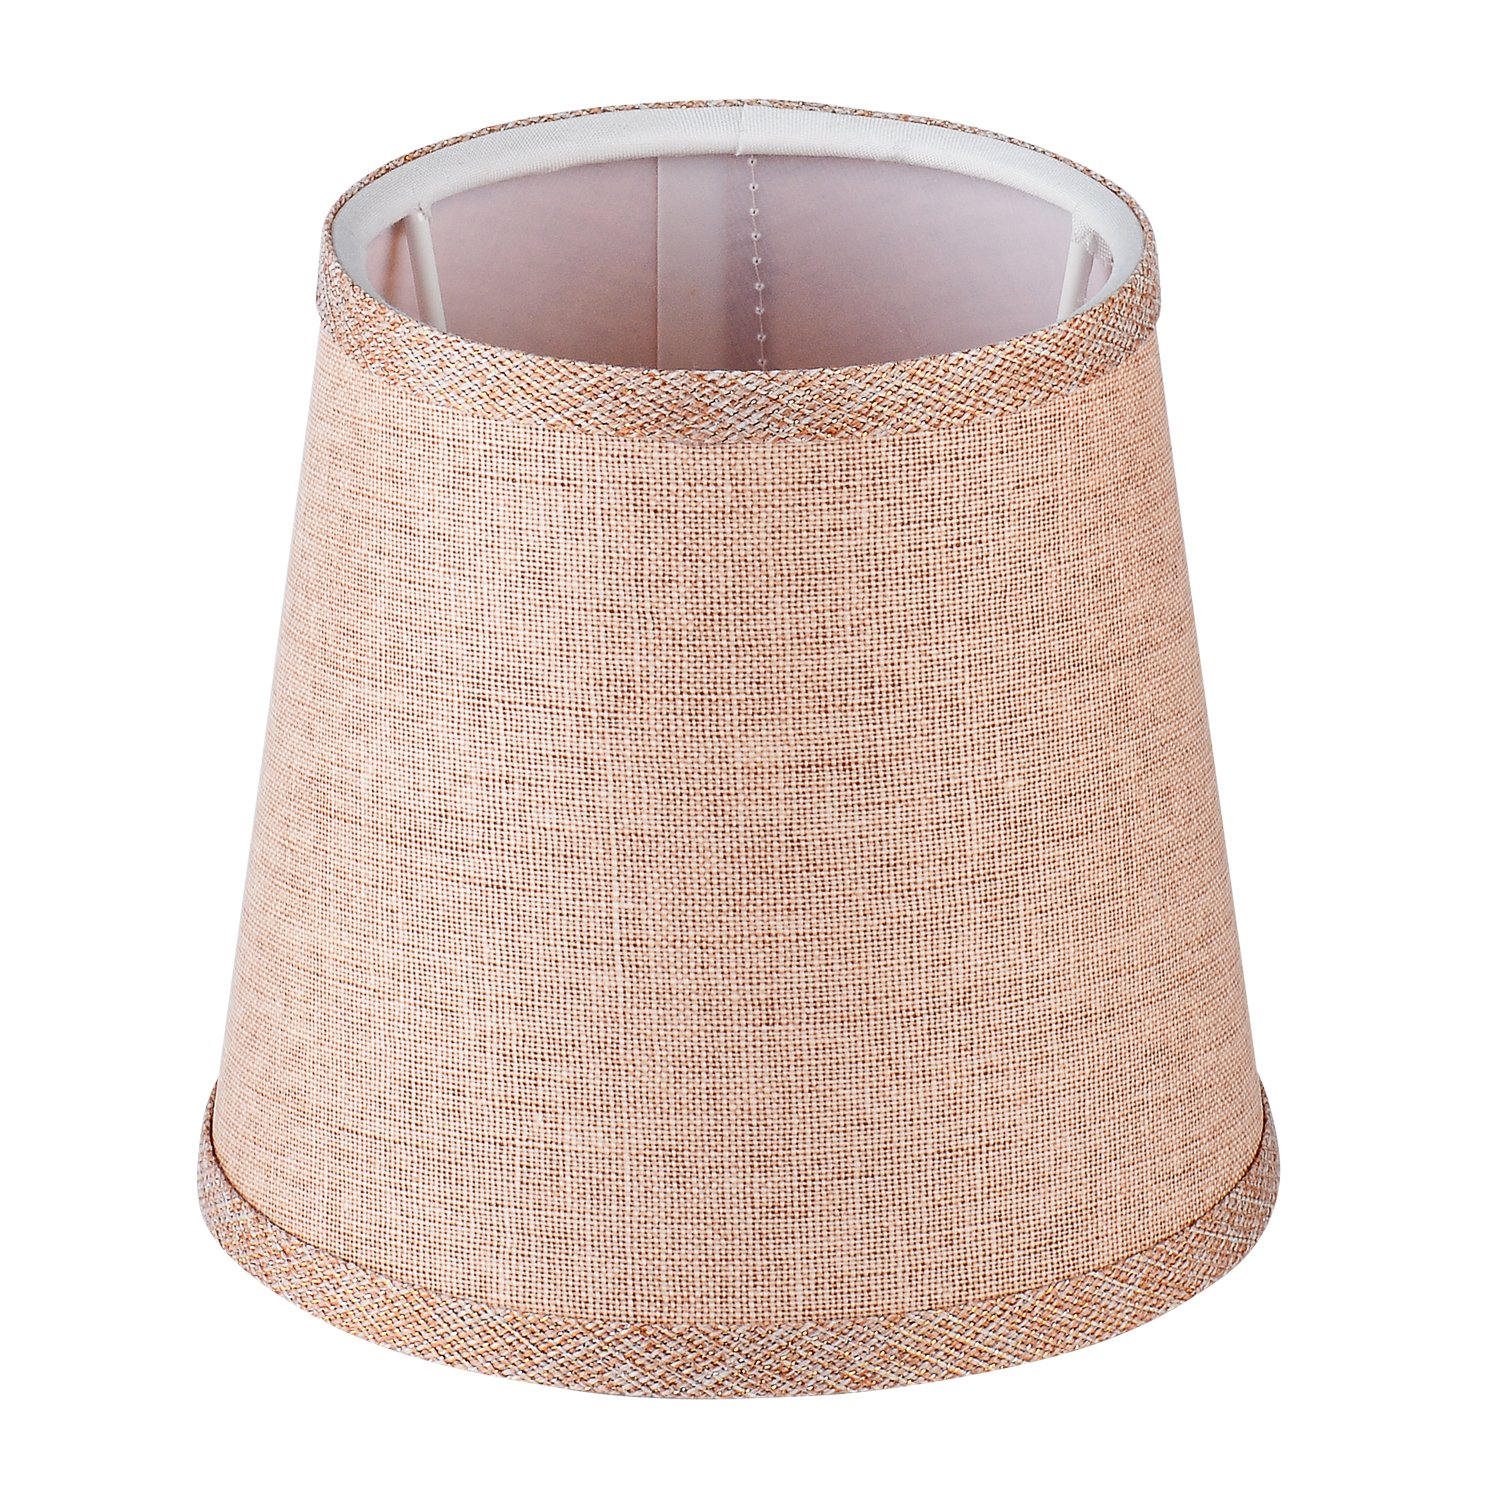 Cleeacc Lampshade Lamp Cover Decorative Handmade Modern E14 Screw Lampshade Buu American Pastoral Style Luxury Crystal Candle Glass E14 Adapter Lamp Shade Cloth Design 3